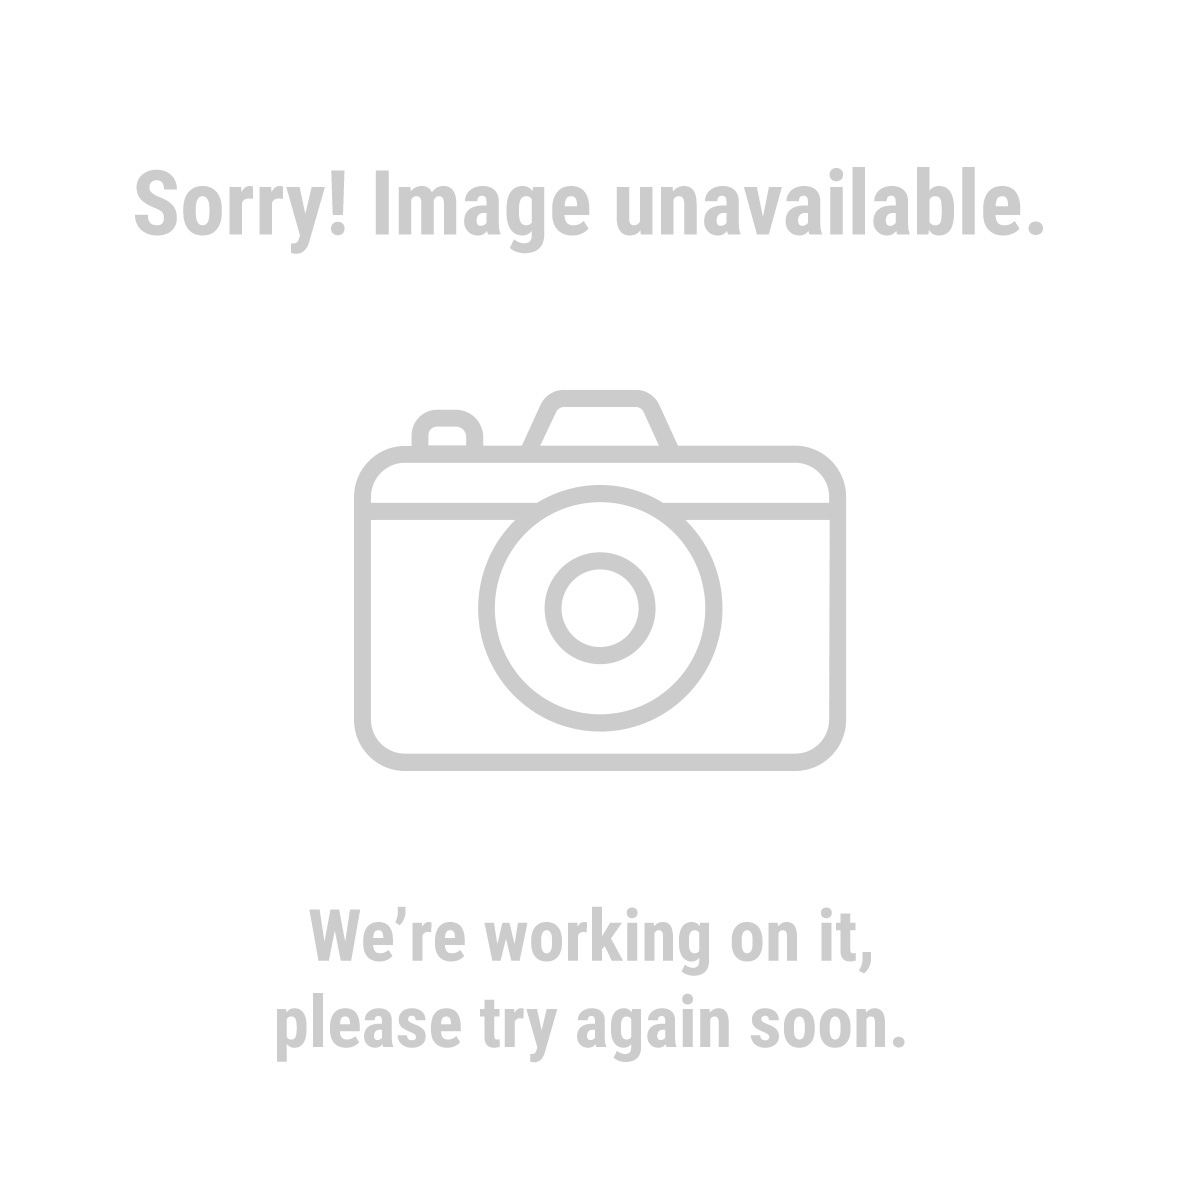 Chicago Electric Welding 62545 0.035 in. E71T-GS Flux Core Welding Wire, 2 lb. Roll